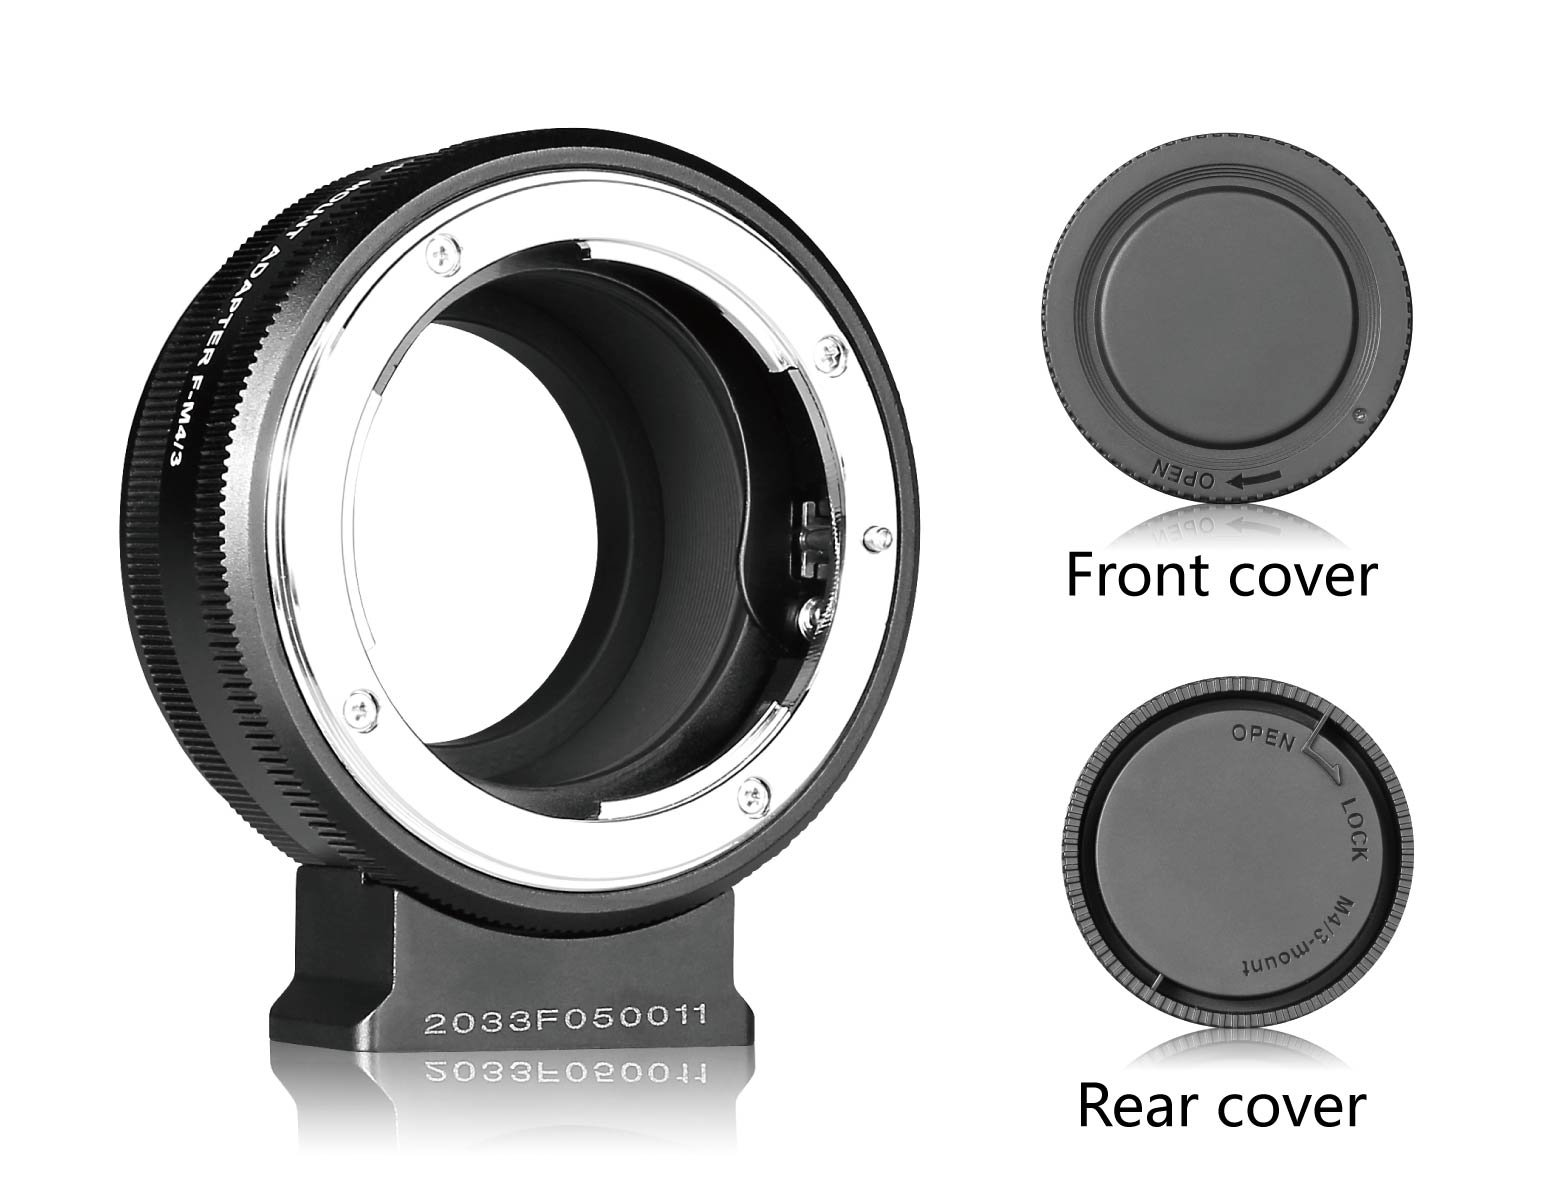 MEIKE Compatible with F-Mount Lens to M43-Mount Mirroless Camera E-PL5 E-PL6 E-PL7 GM5 GX1 GX7 G3 Manual Adapter Ring MEIKE MK-NF-P by Meike